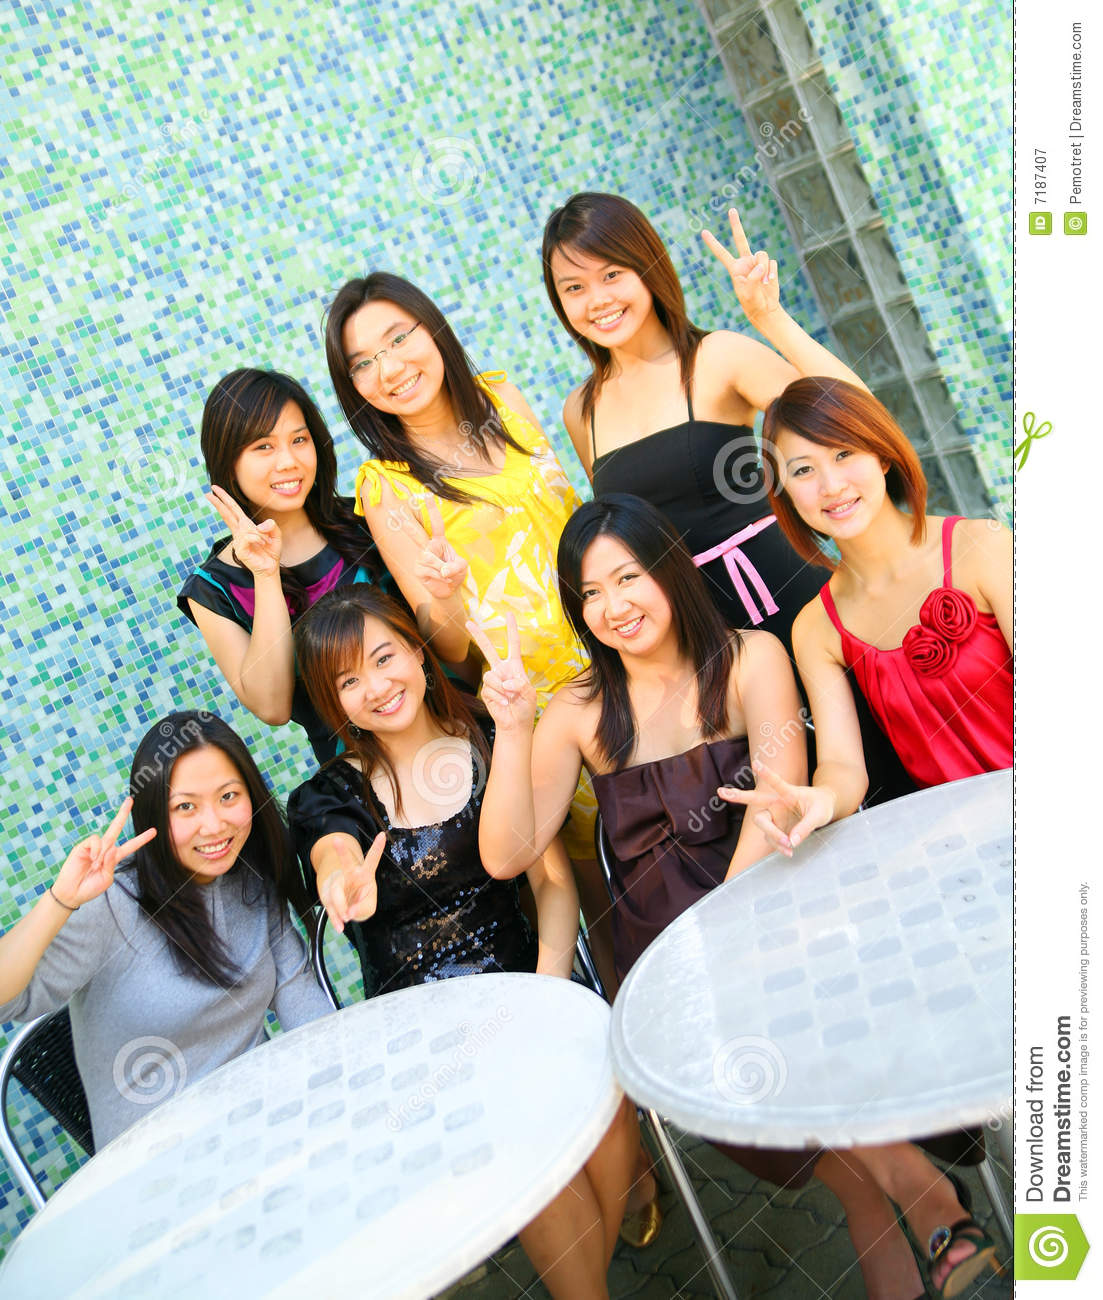 Can asian chicks group pics